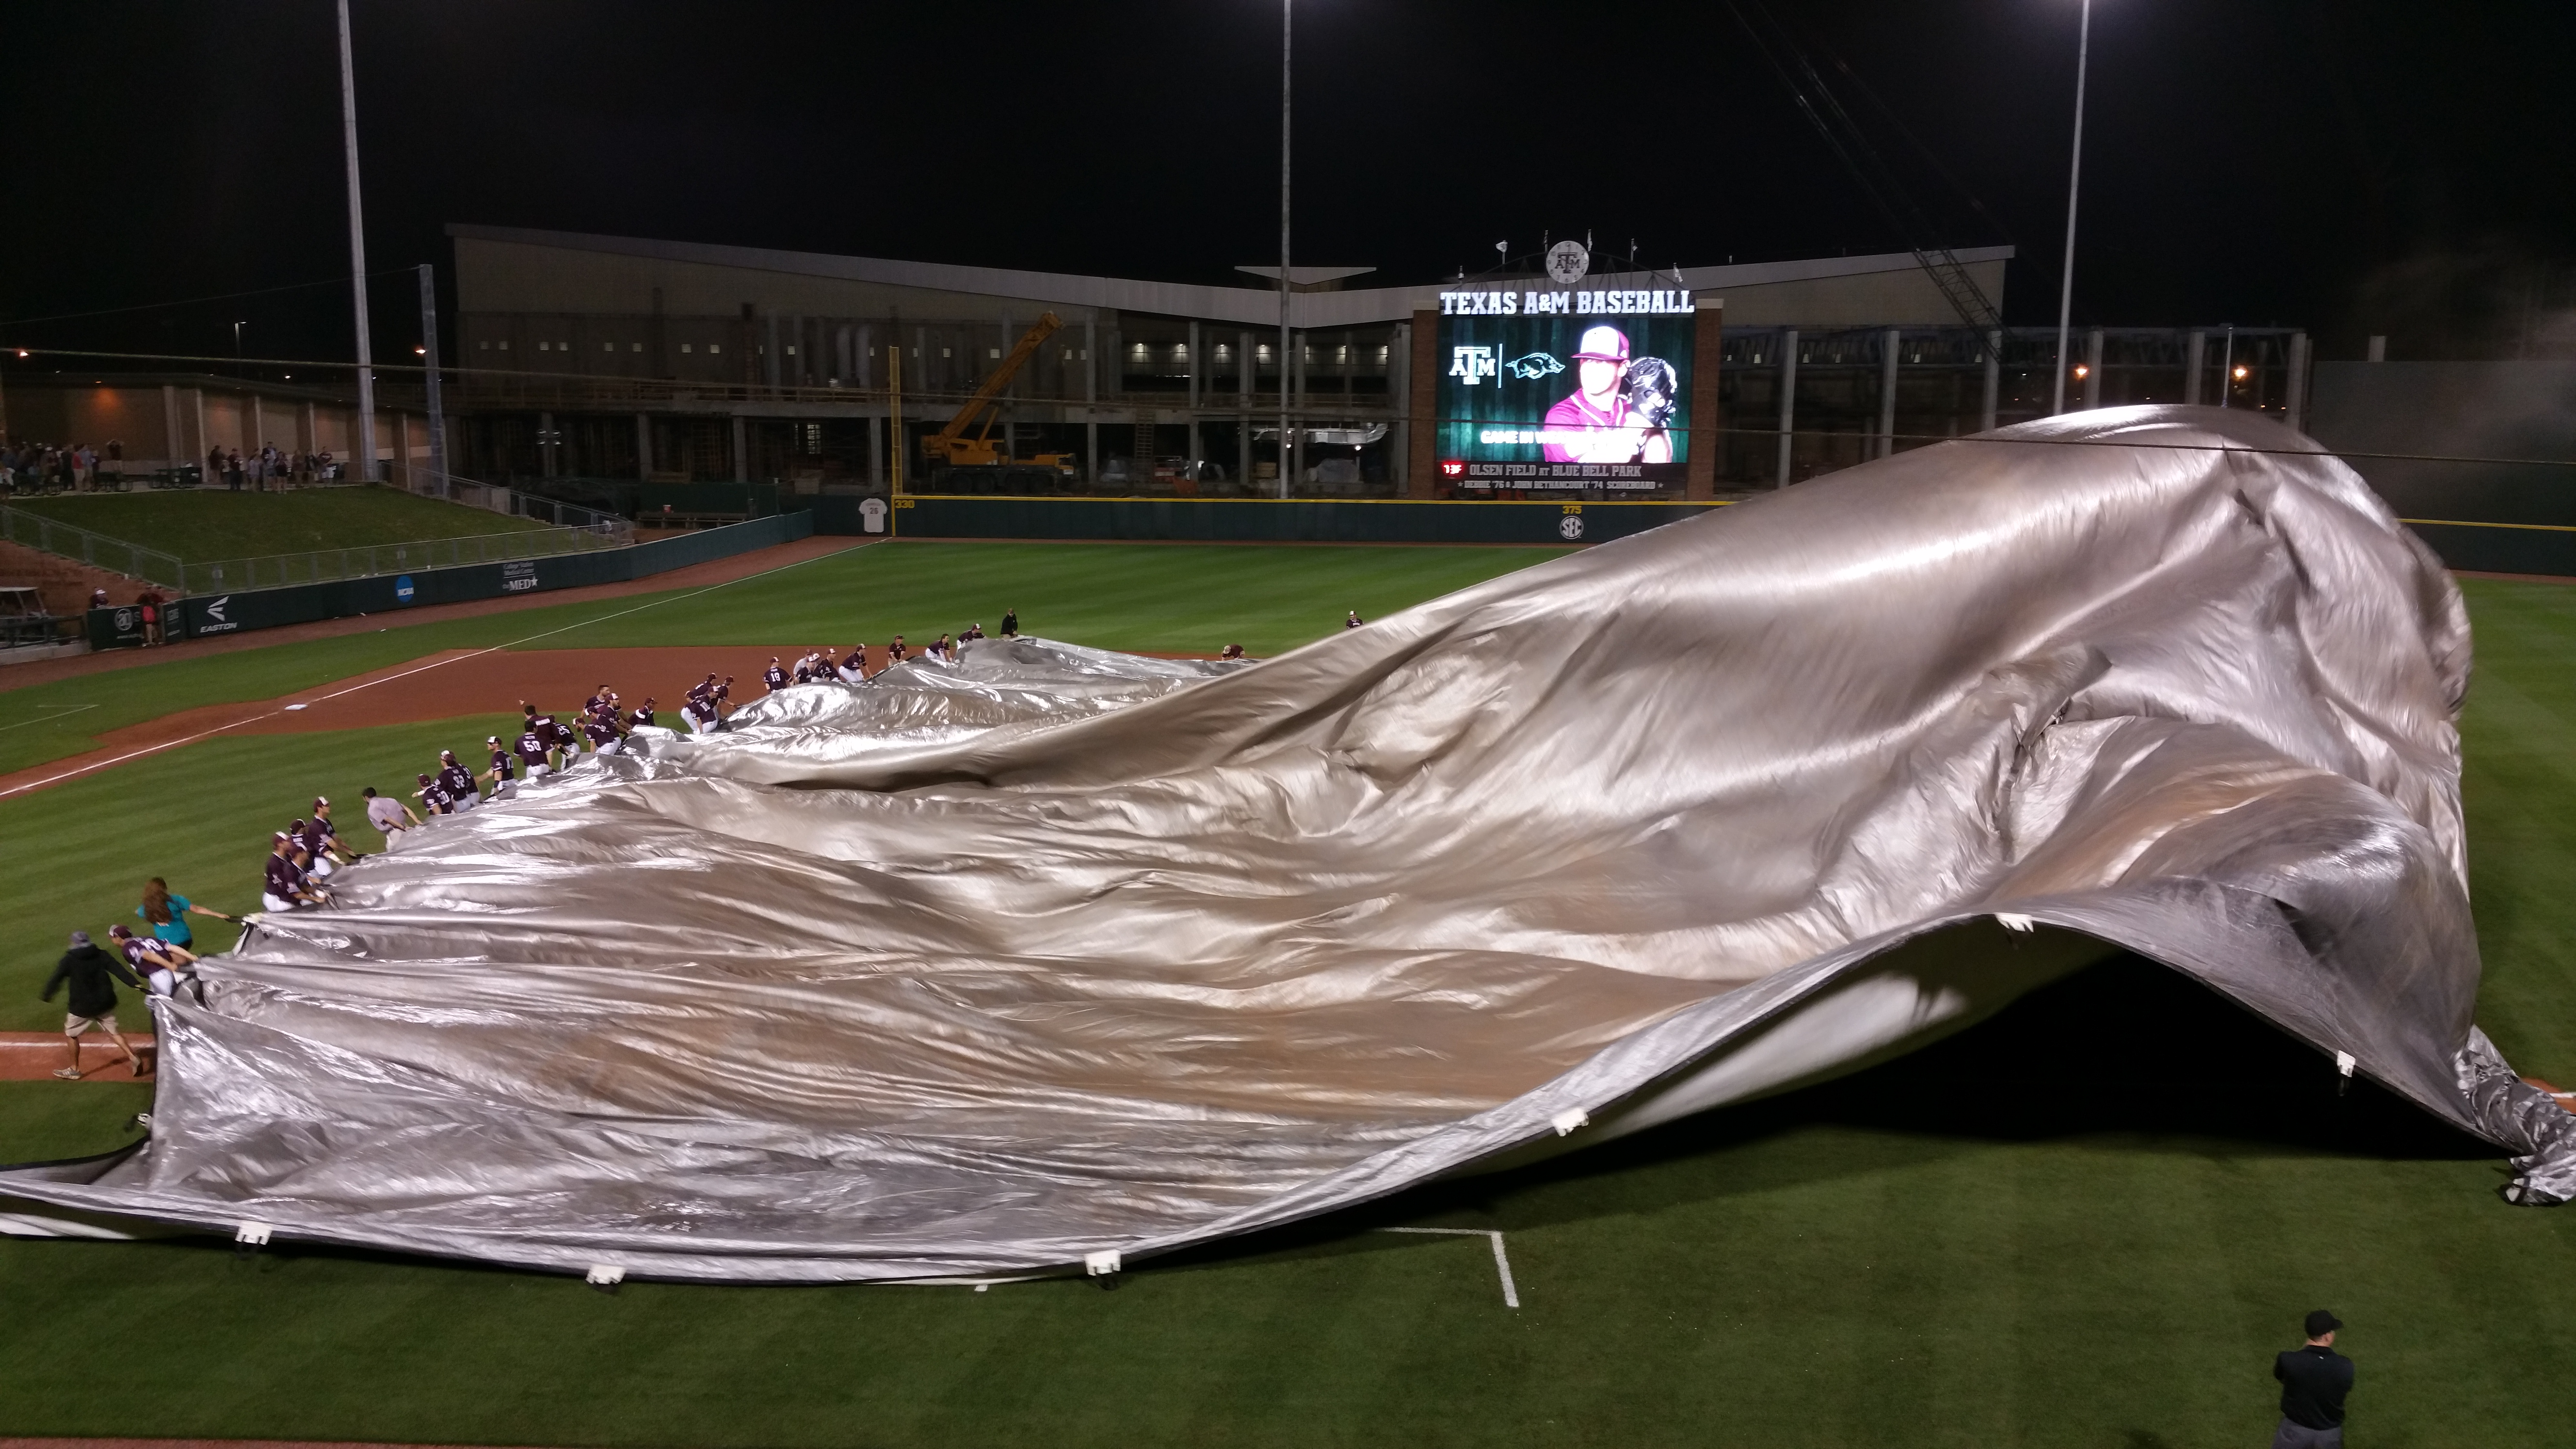 The winds picked up enough for the ground crew to need a bit of help from the team to get the tarp down.